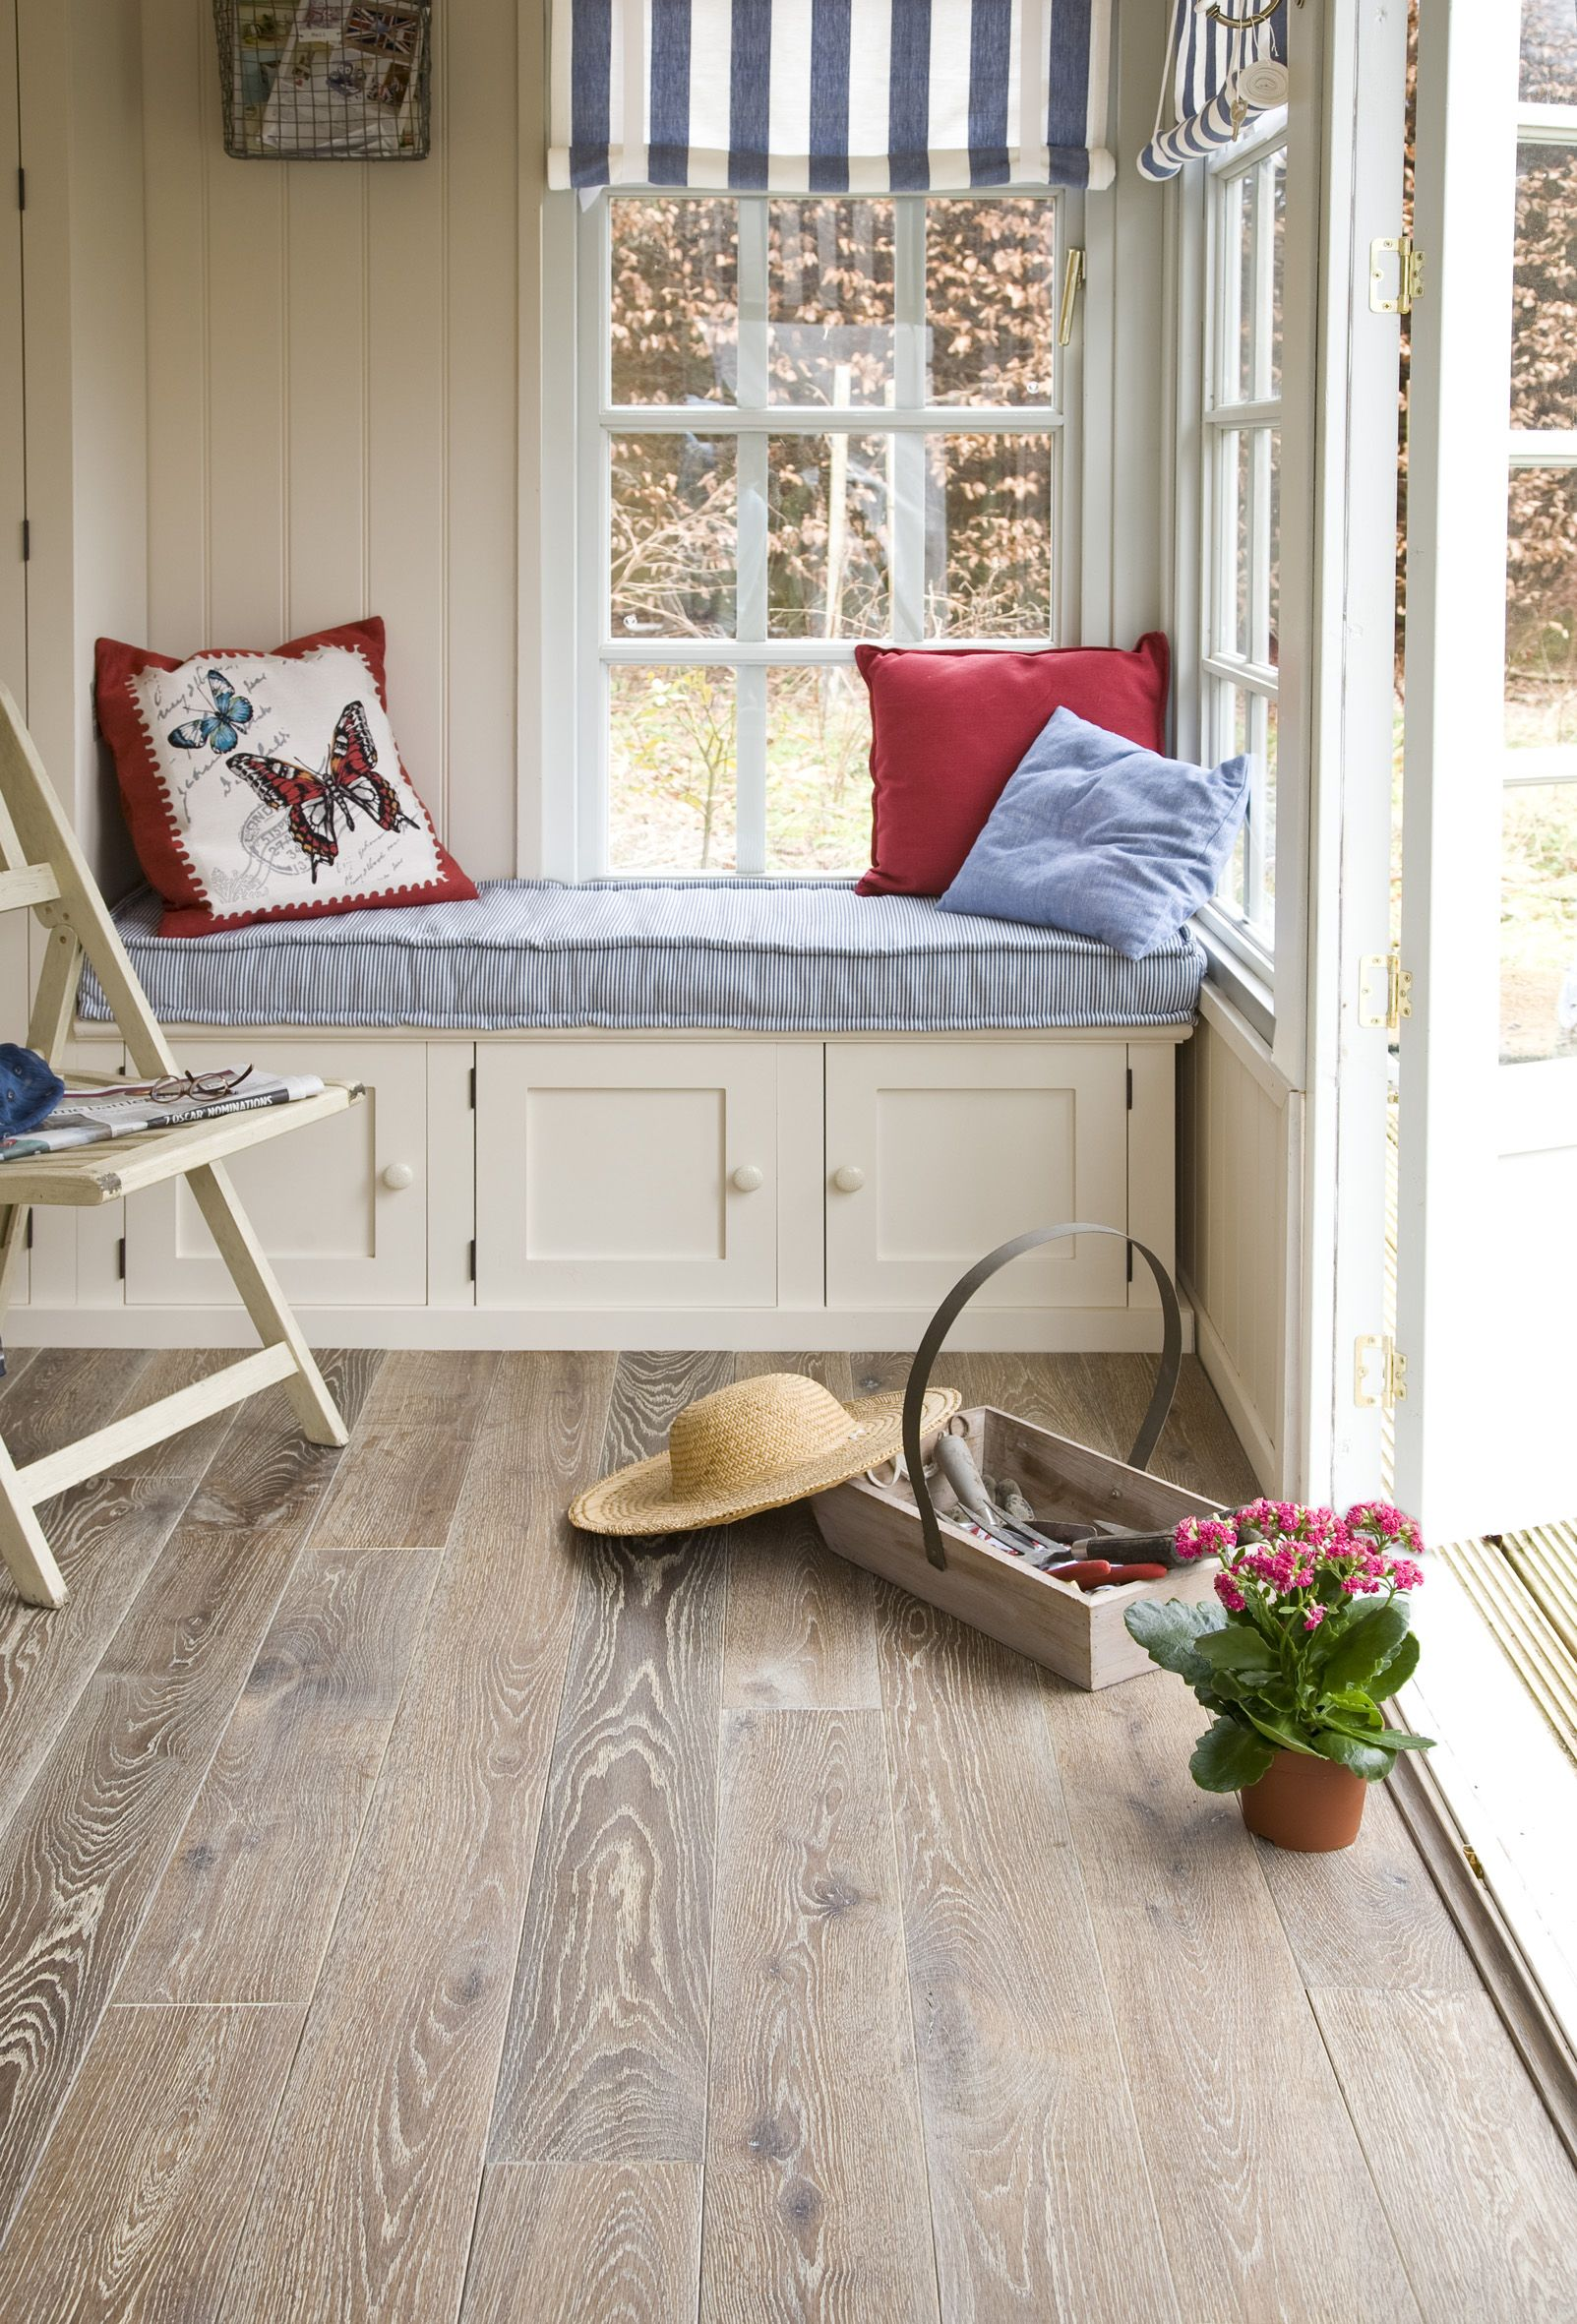 Red, white and blue looks lovely with rustic oak flooring